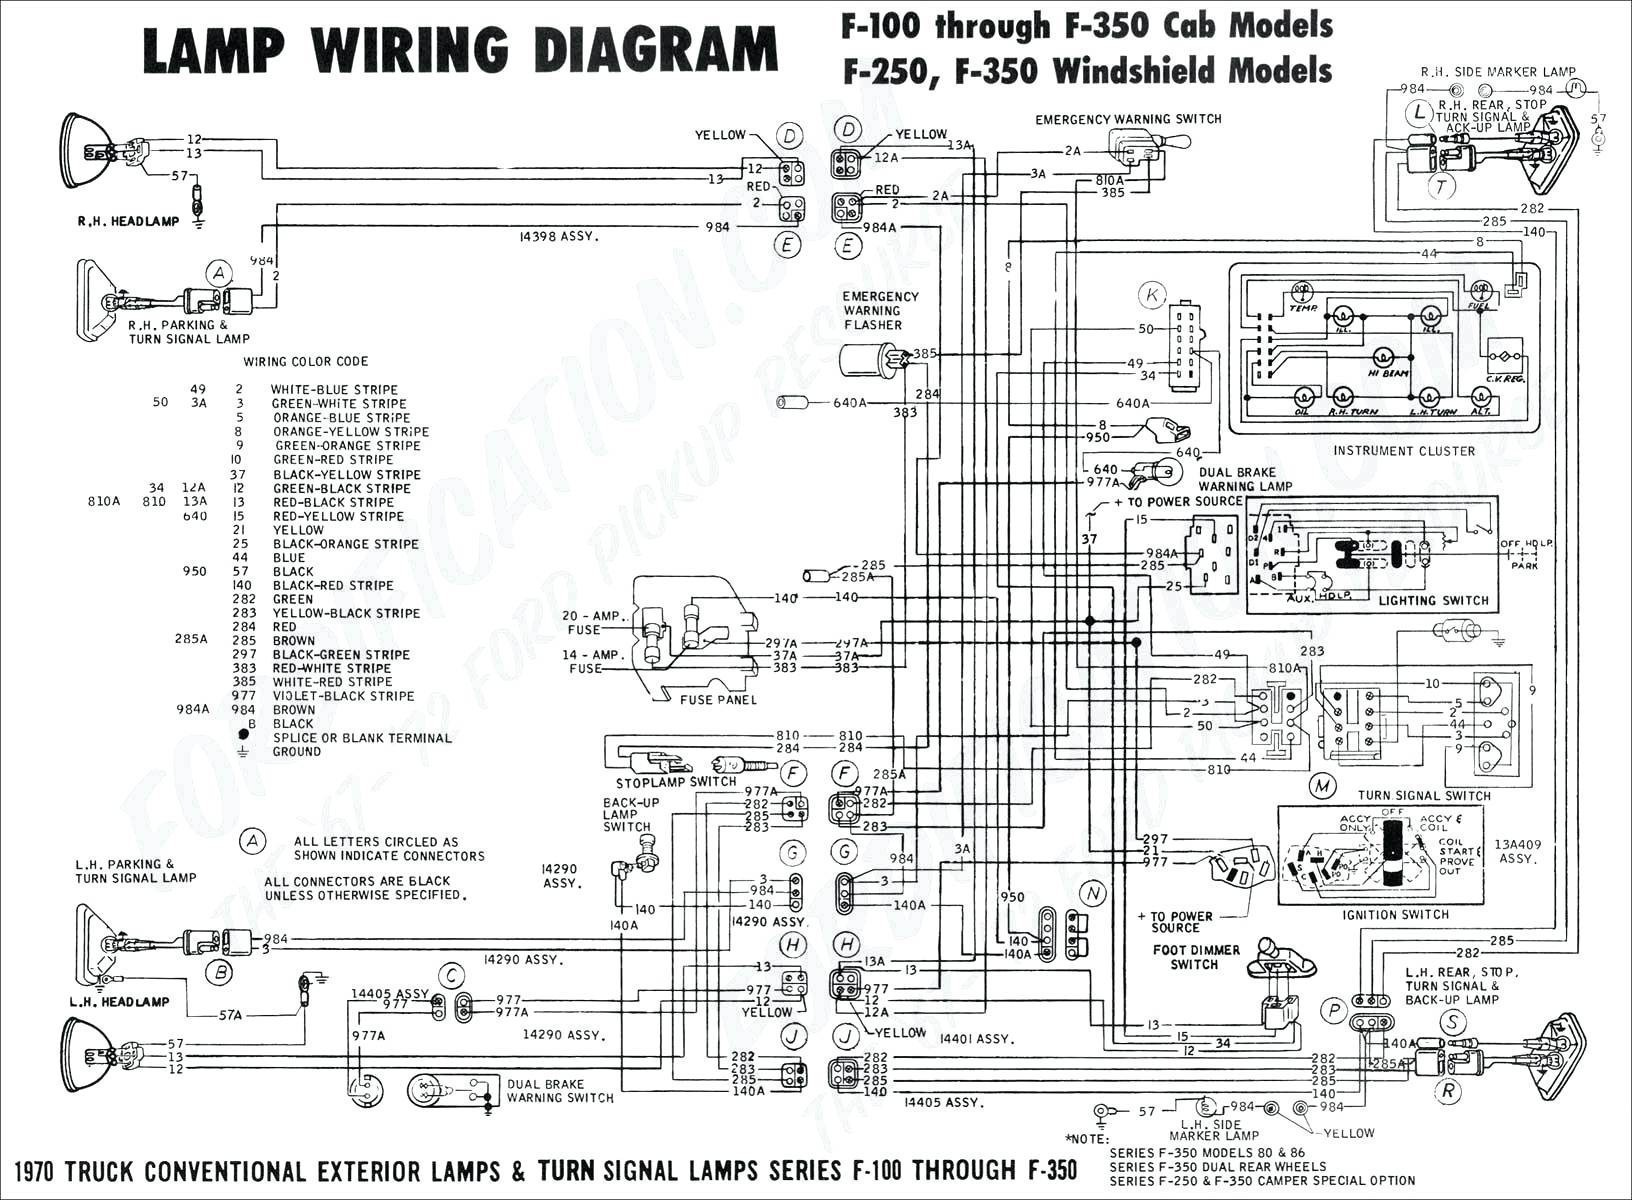 Mini Truck Wiring Diagram Schematic 2007 Mitsubishi Fuso Diagrams Experts Of U2022 1999 Dodge